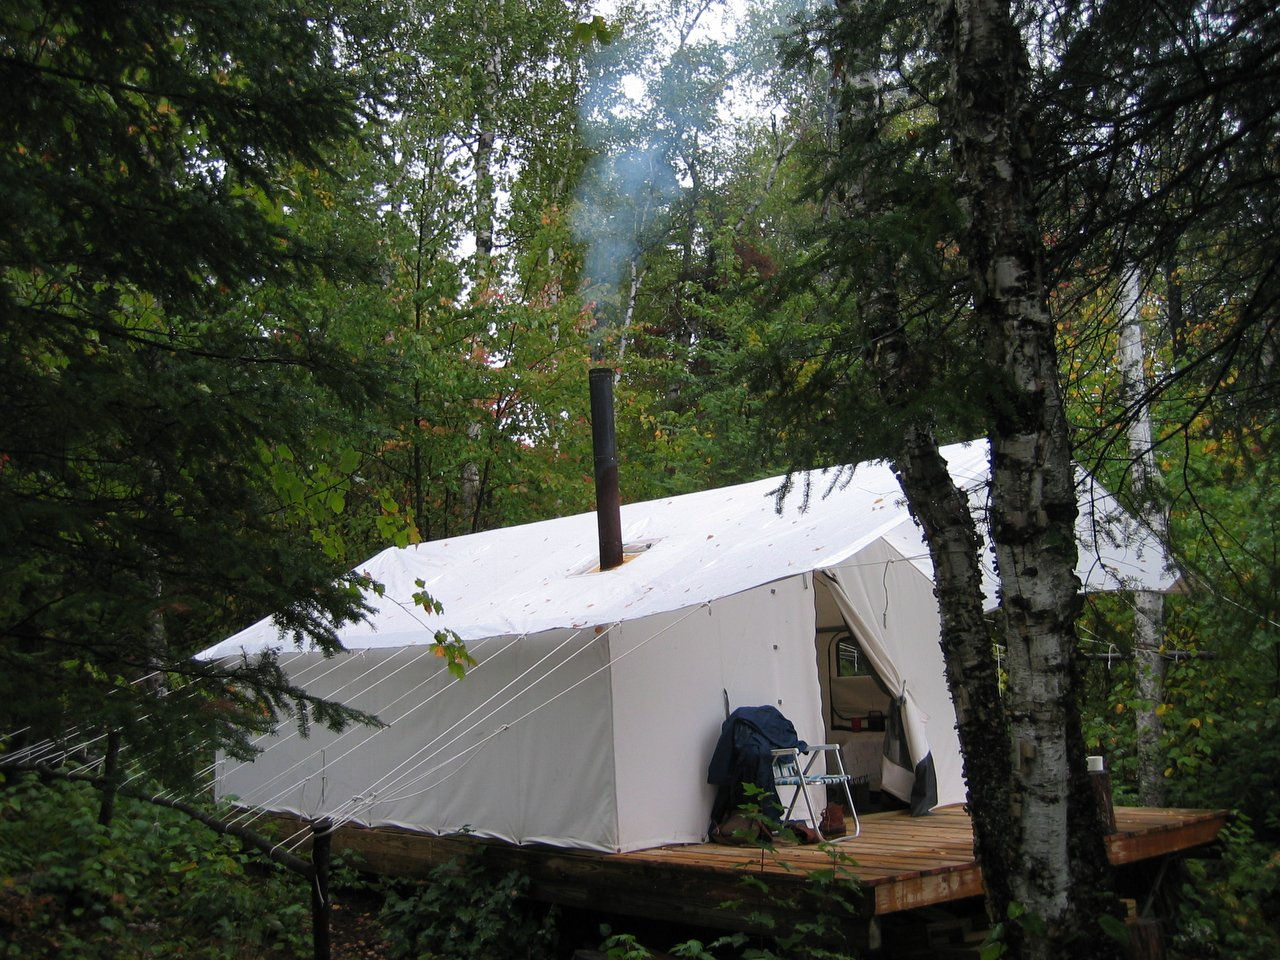 Rain Fly For Sale - Canvas Tent Awning For Sale - Davis Tent